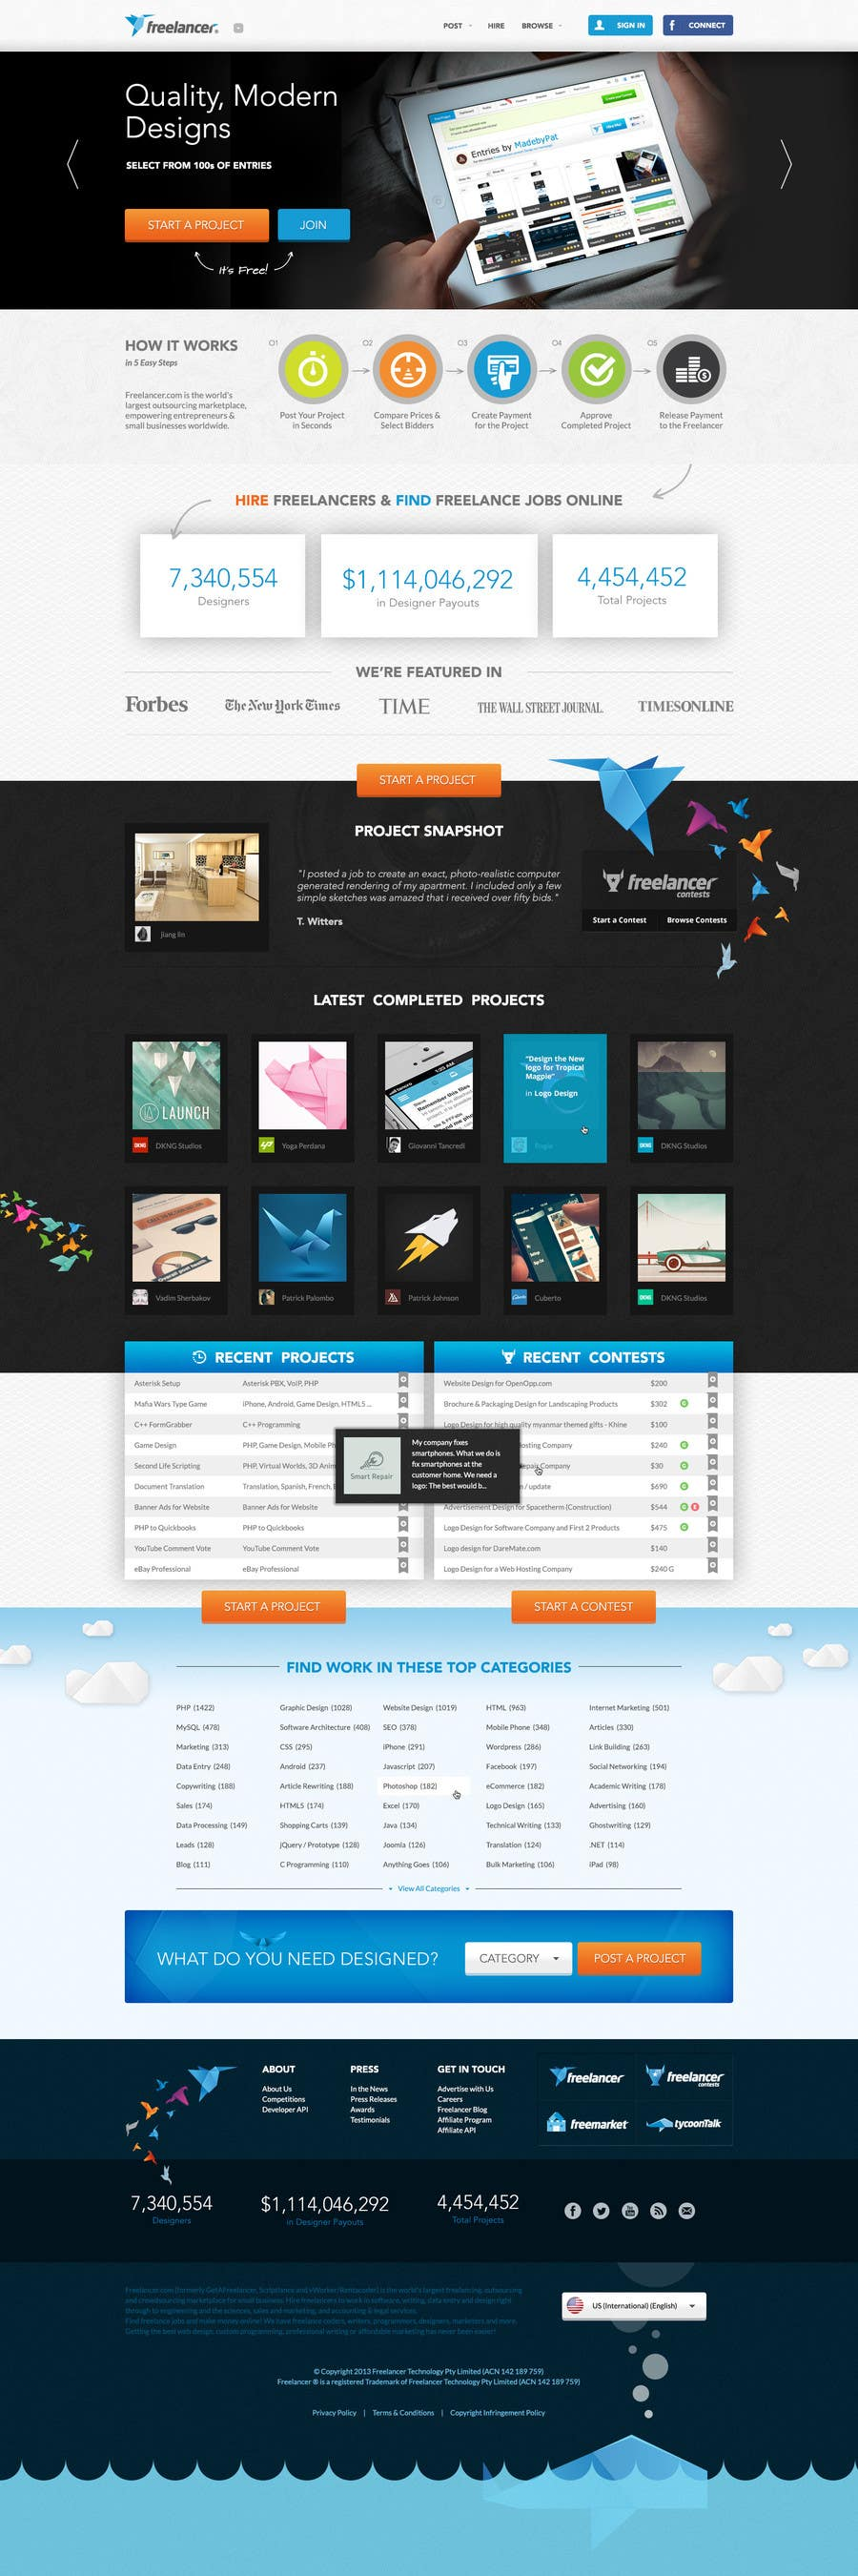 #579 for Freelancer.com contest! Design our Homepage! by MadebyPat